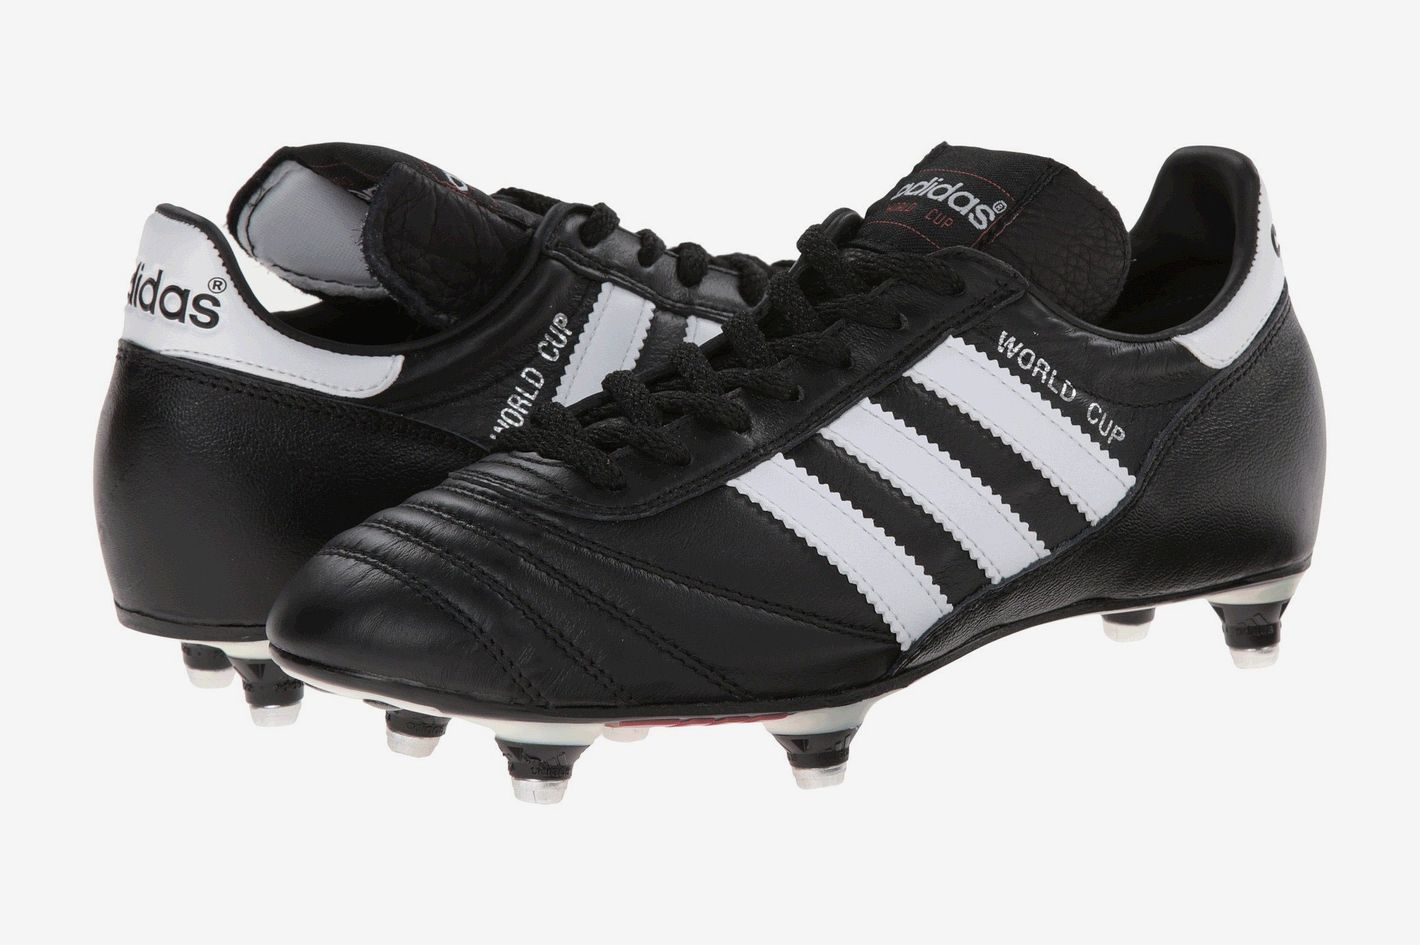 3aaa70b58 13 Best Soccer Cleats